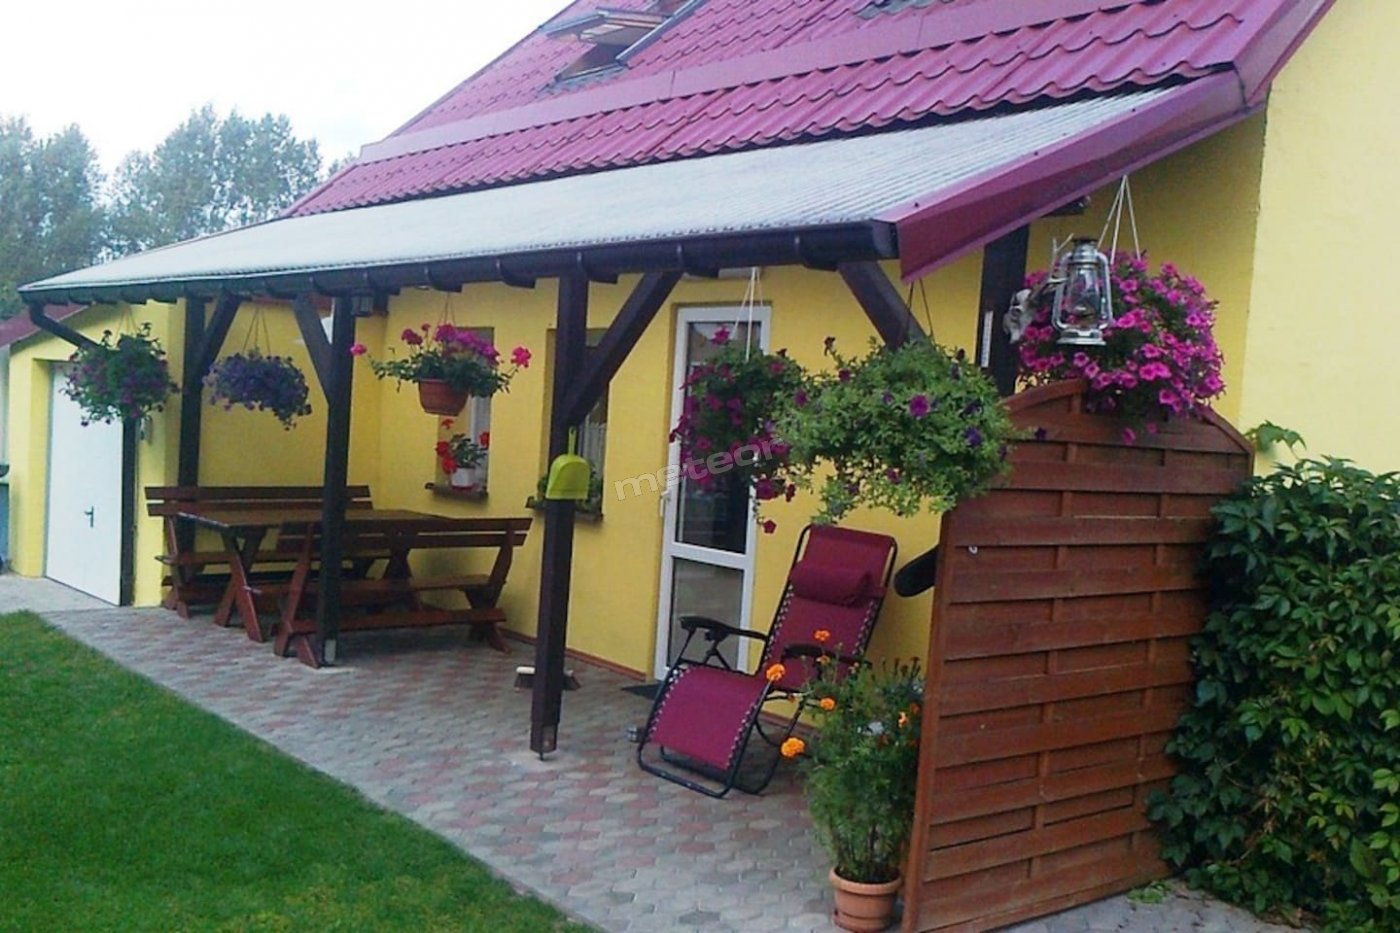 Bungalow Viga in Jasieniec